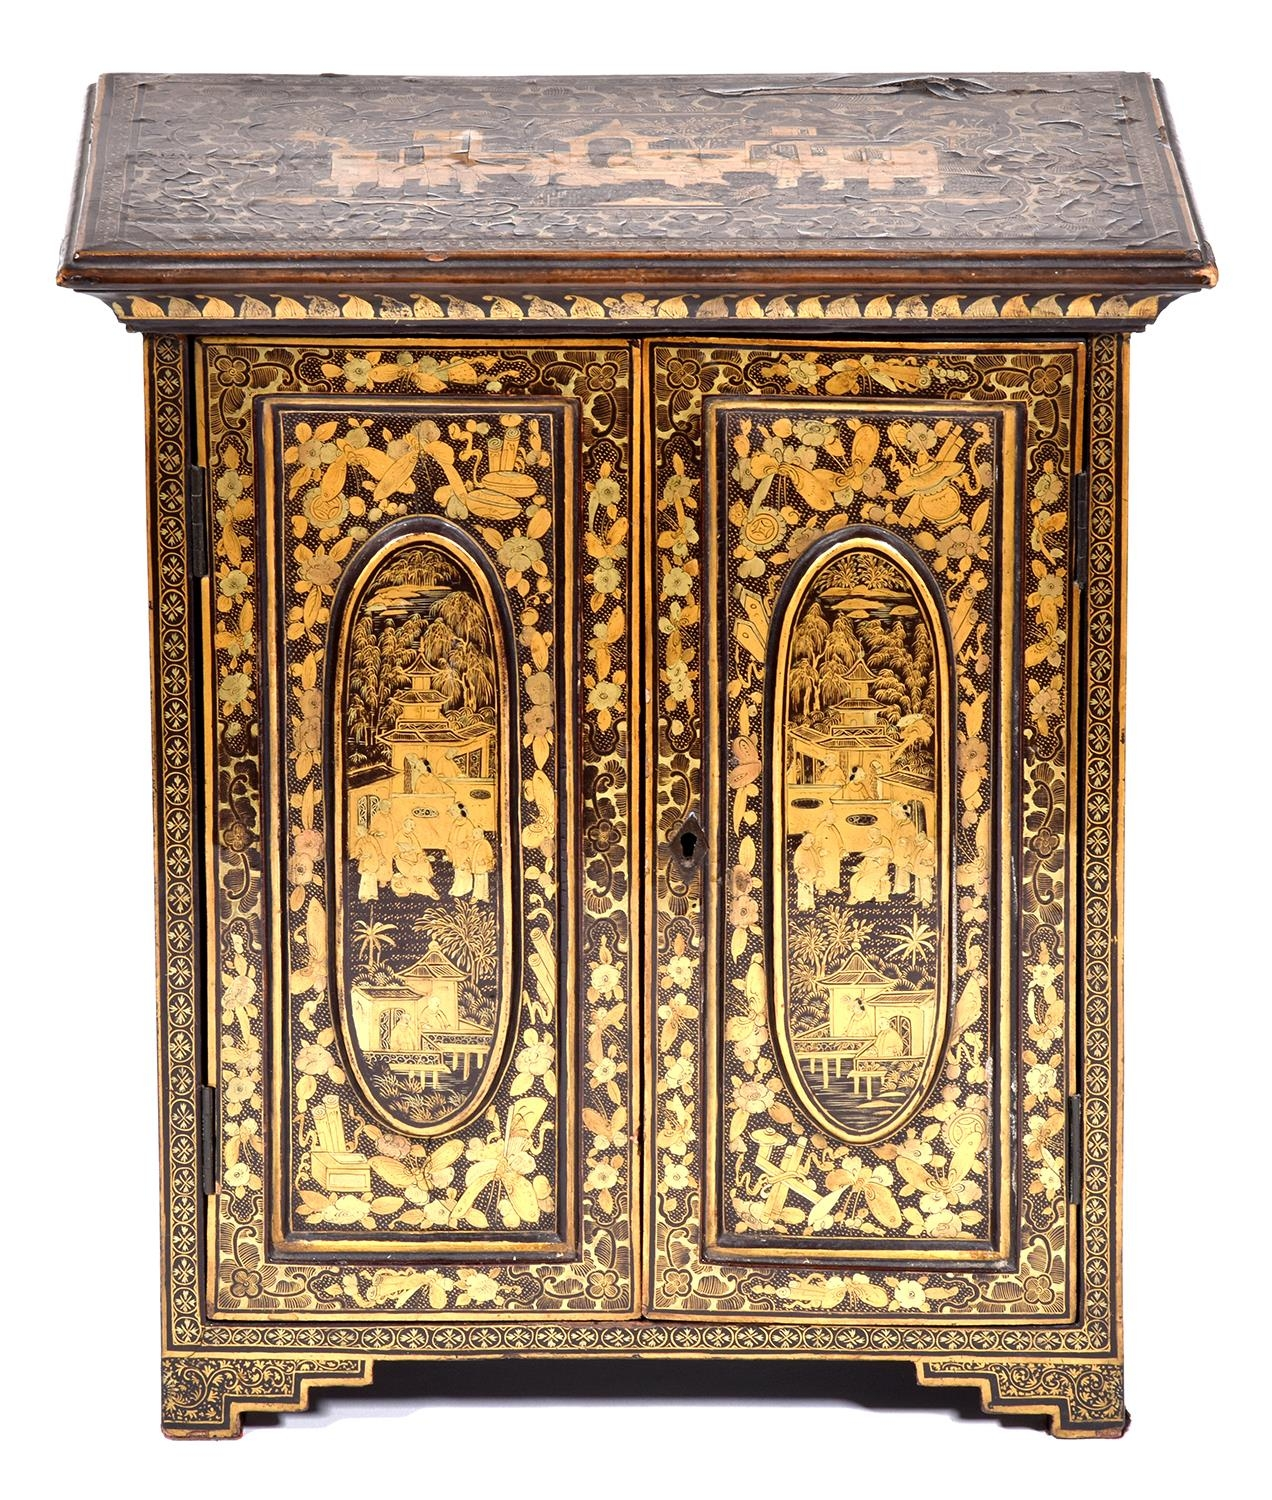 A Chinese black and gold export lacquer table cabinet, early 19th c, the panelled doors enclosing